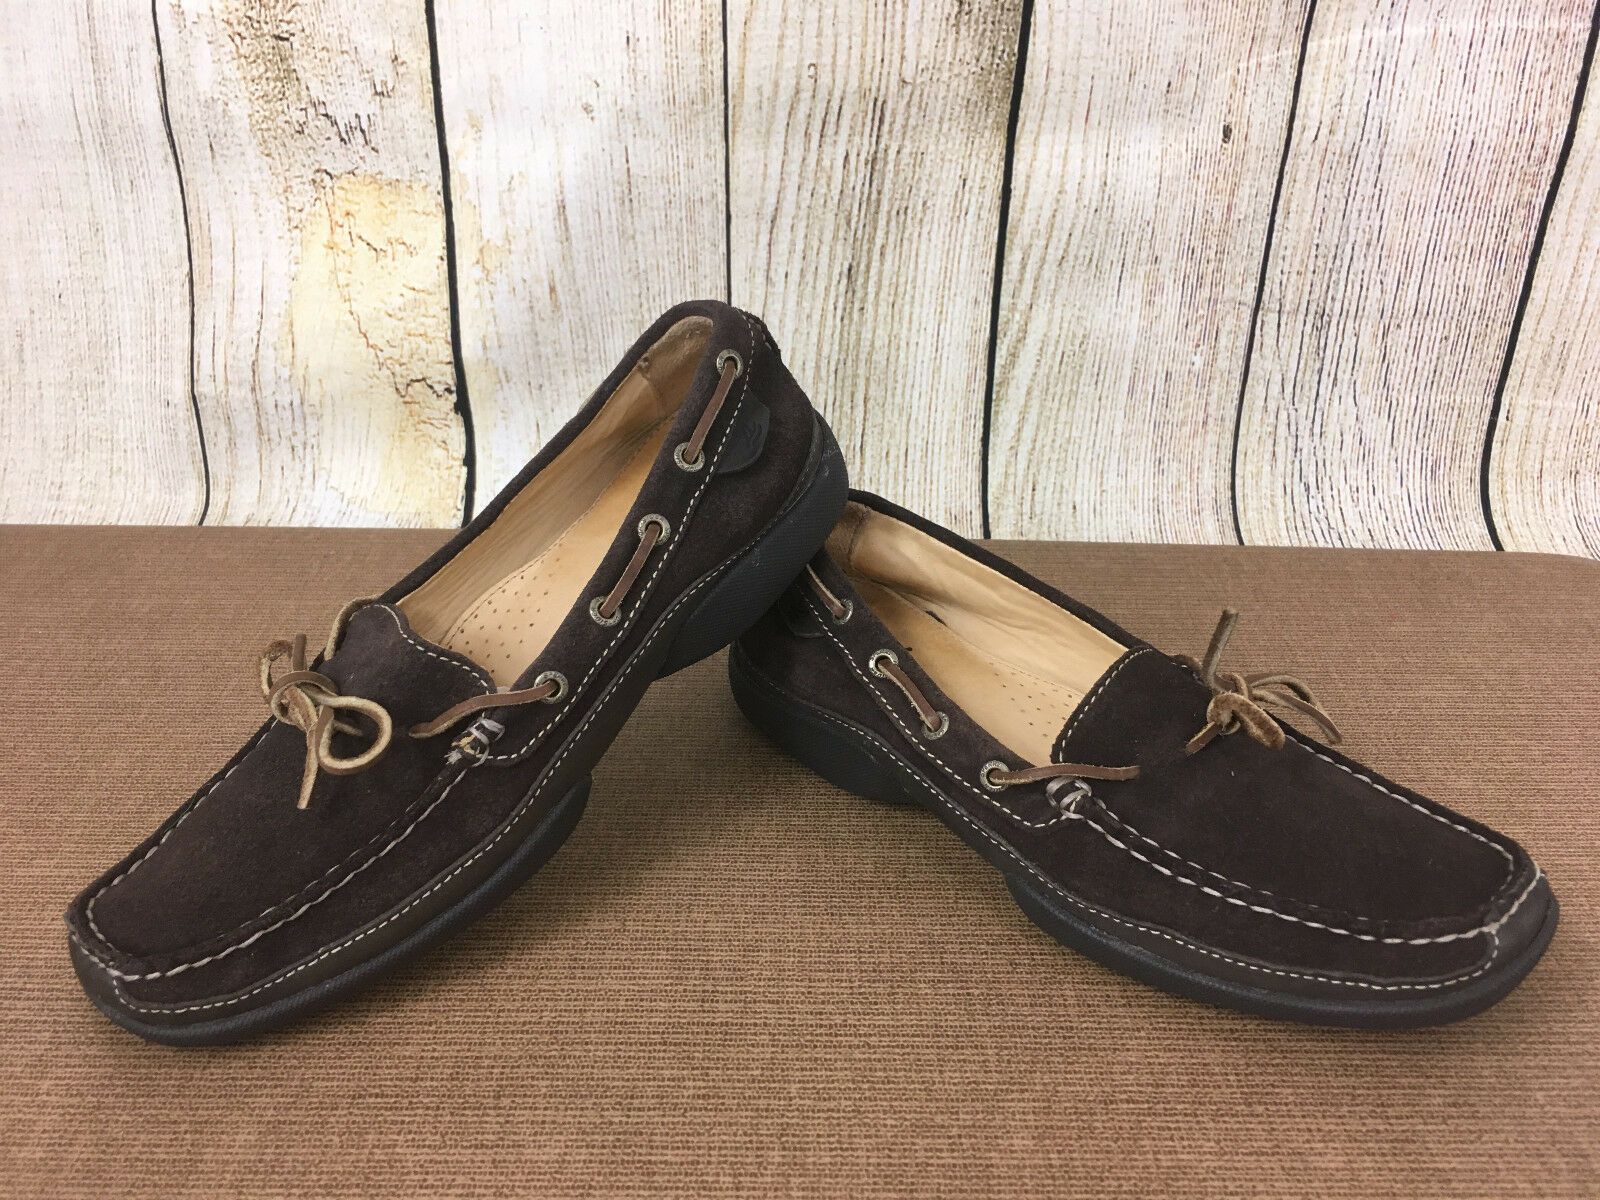 Womens 7 M Sperry Top-Sider Brown Suede Leather Loafer Drivers shoes       G40(5